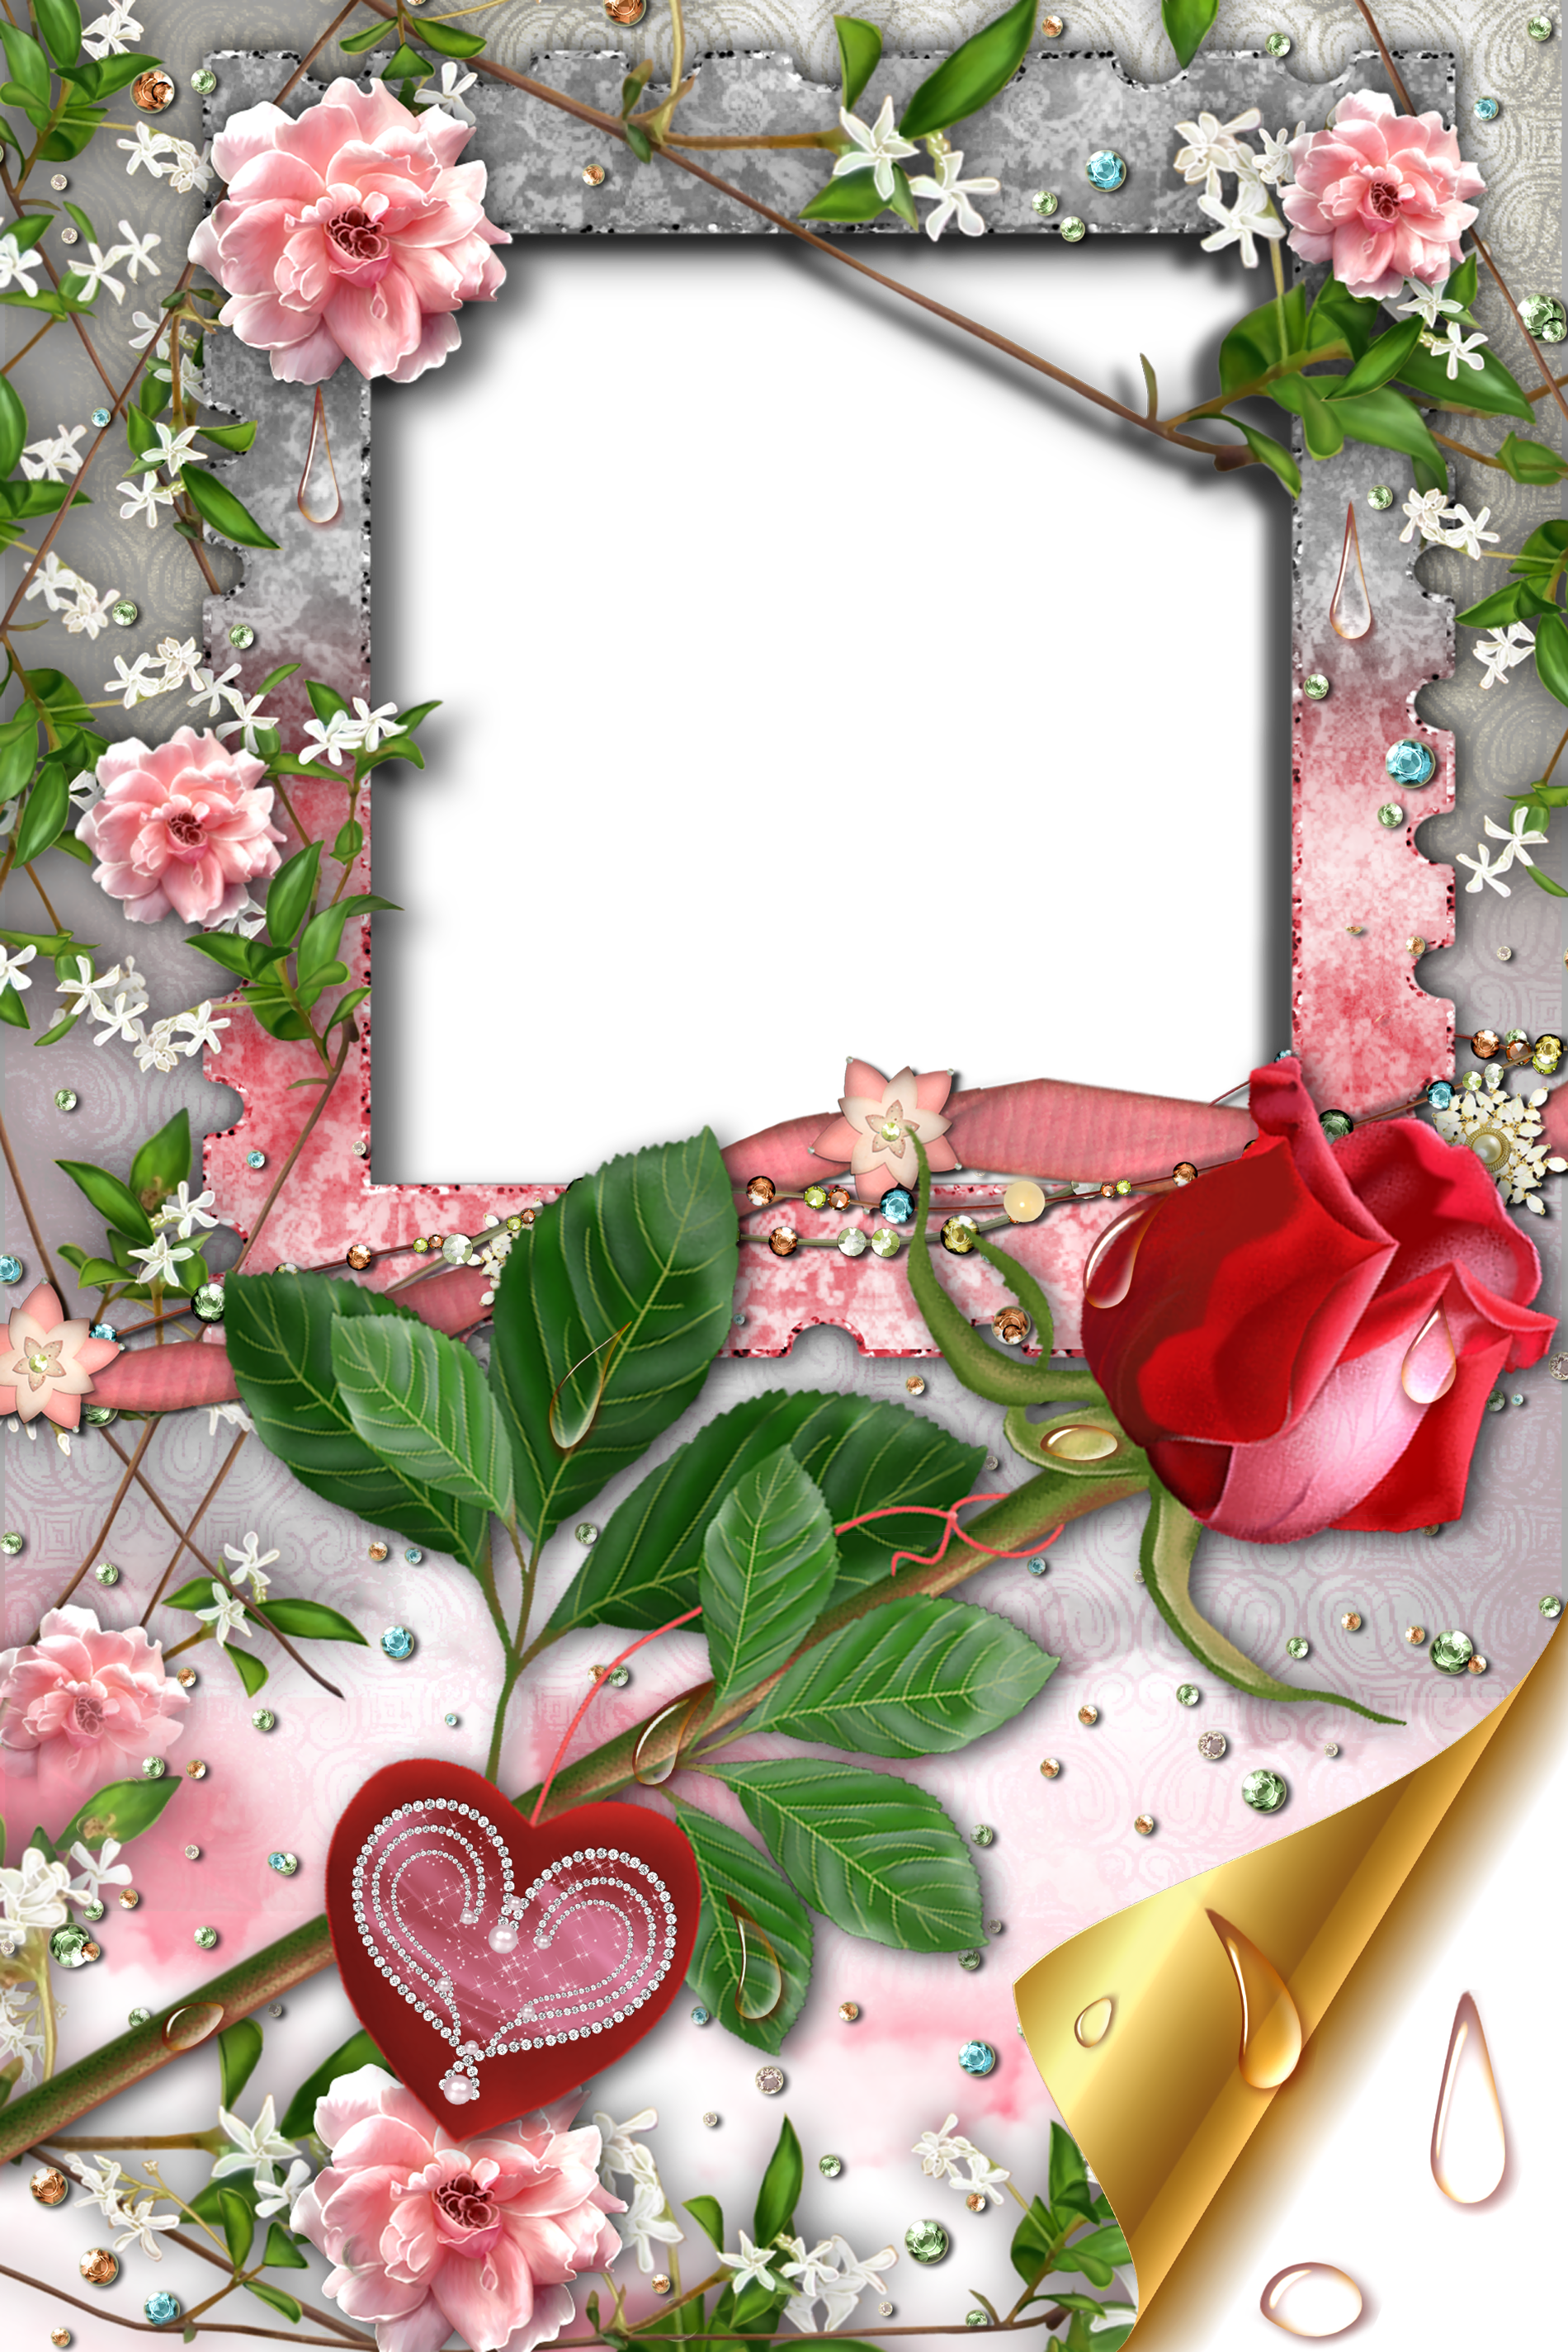 Transparent Romantic Frame with Rose and Heart | Gallery ... image free download